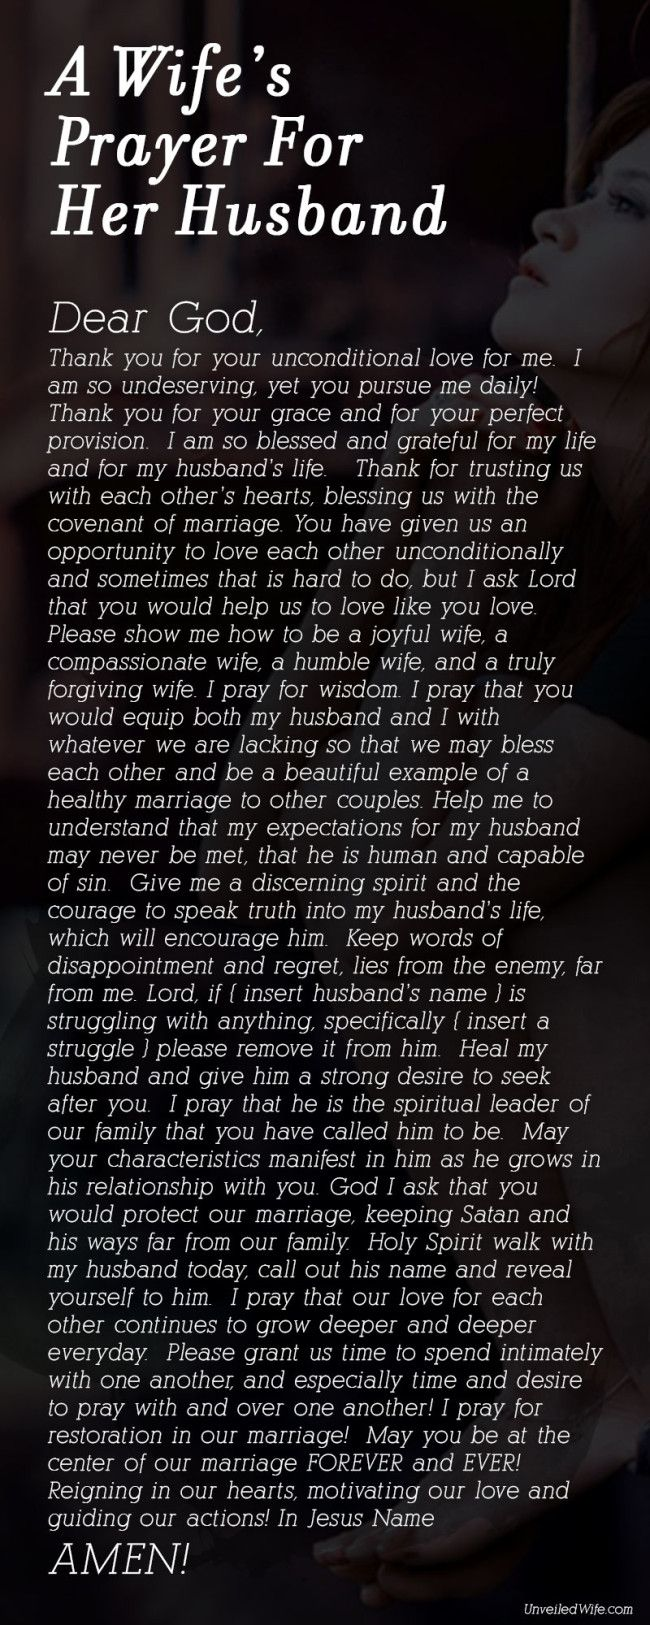 A Wifes Prayer For Her Husband